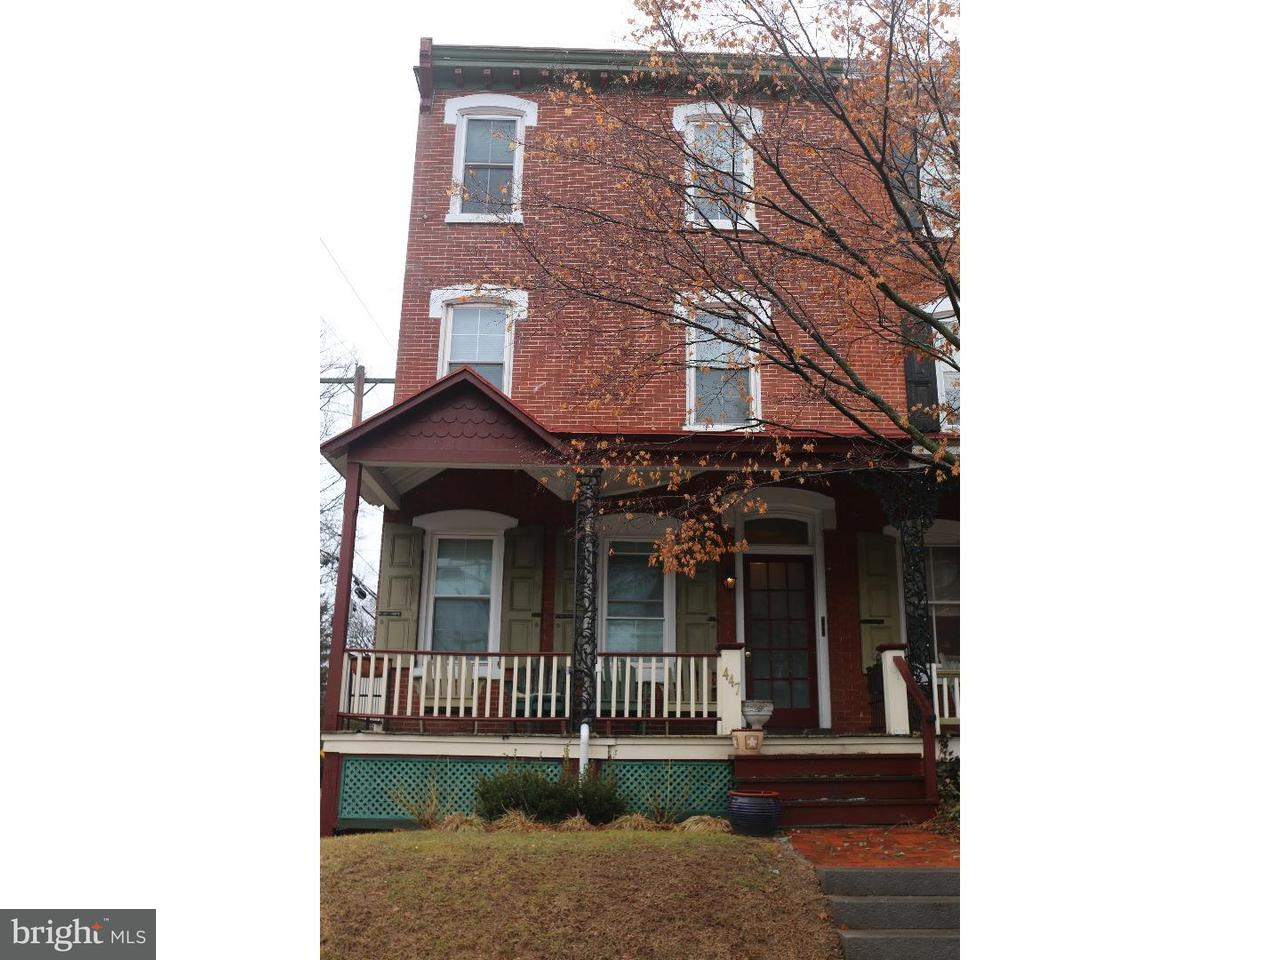 447 N Walnut West Chester, PA 19380